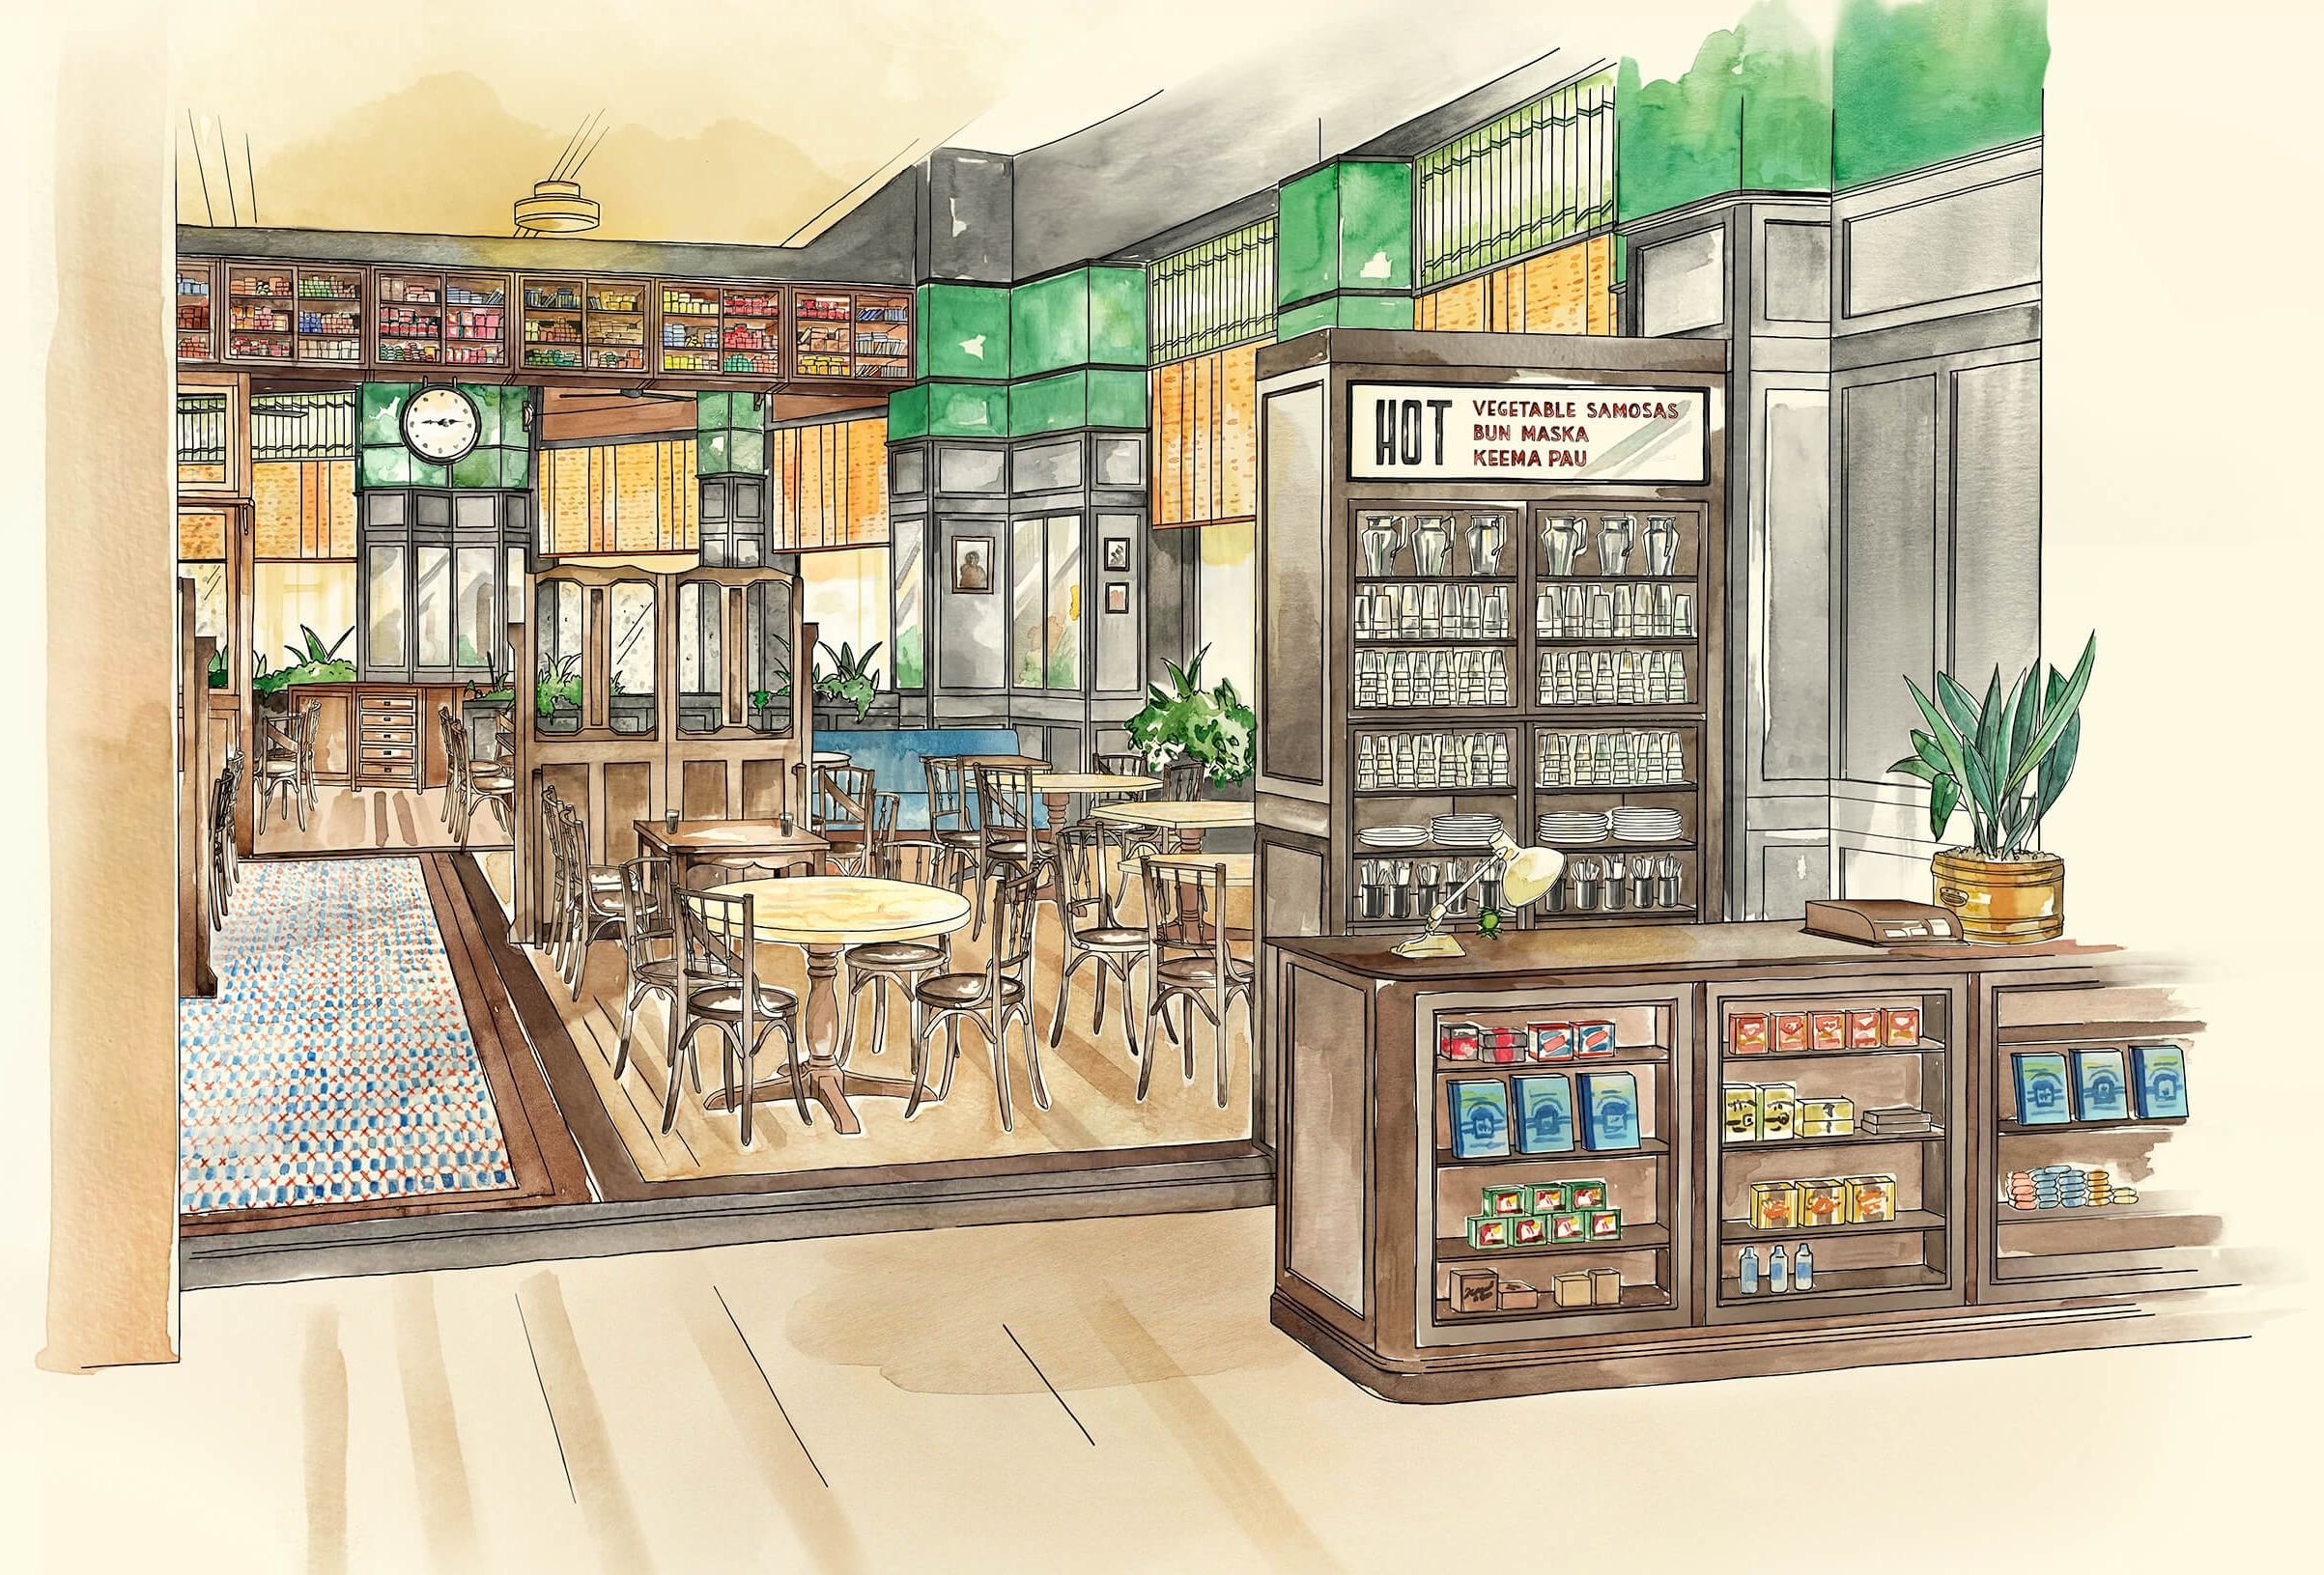 Watercolour and digital illustration of Dishoom Restaurant in Birmingham by Edinburgh Illustrator Sheree Walker